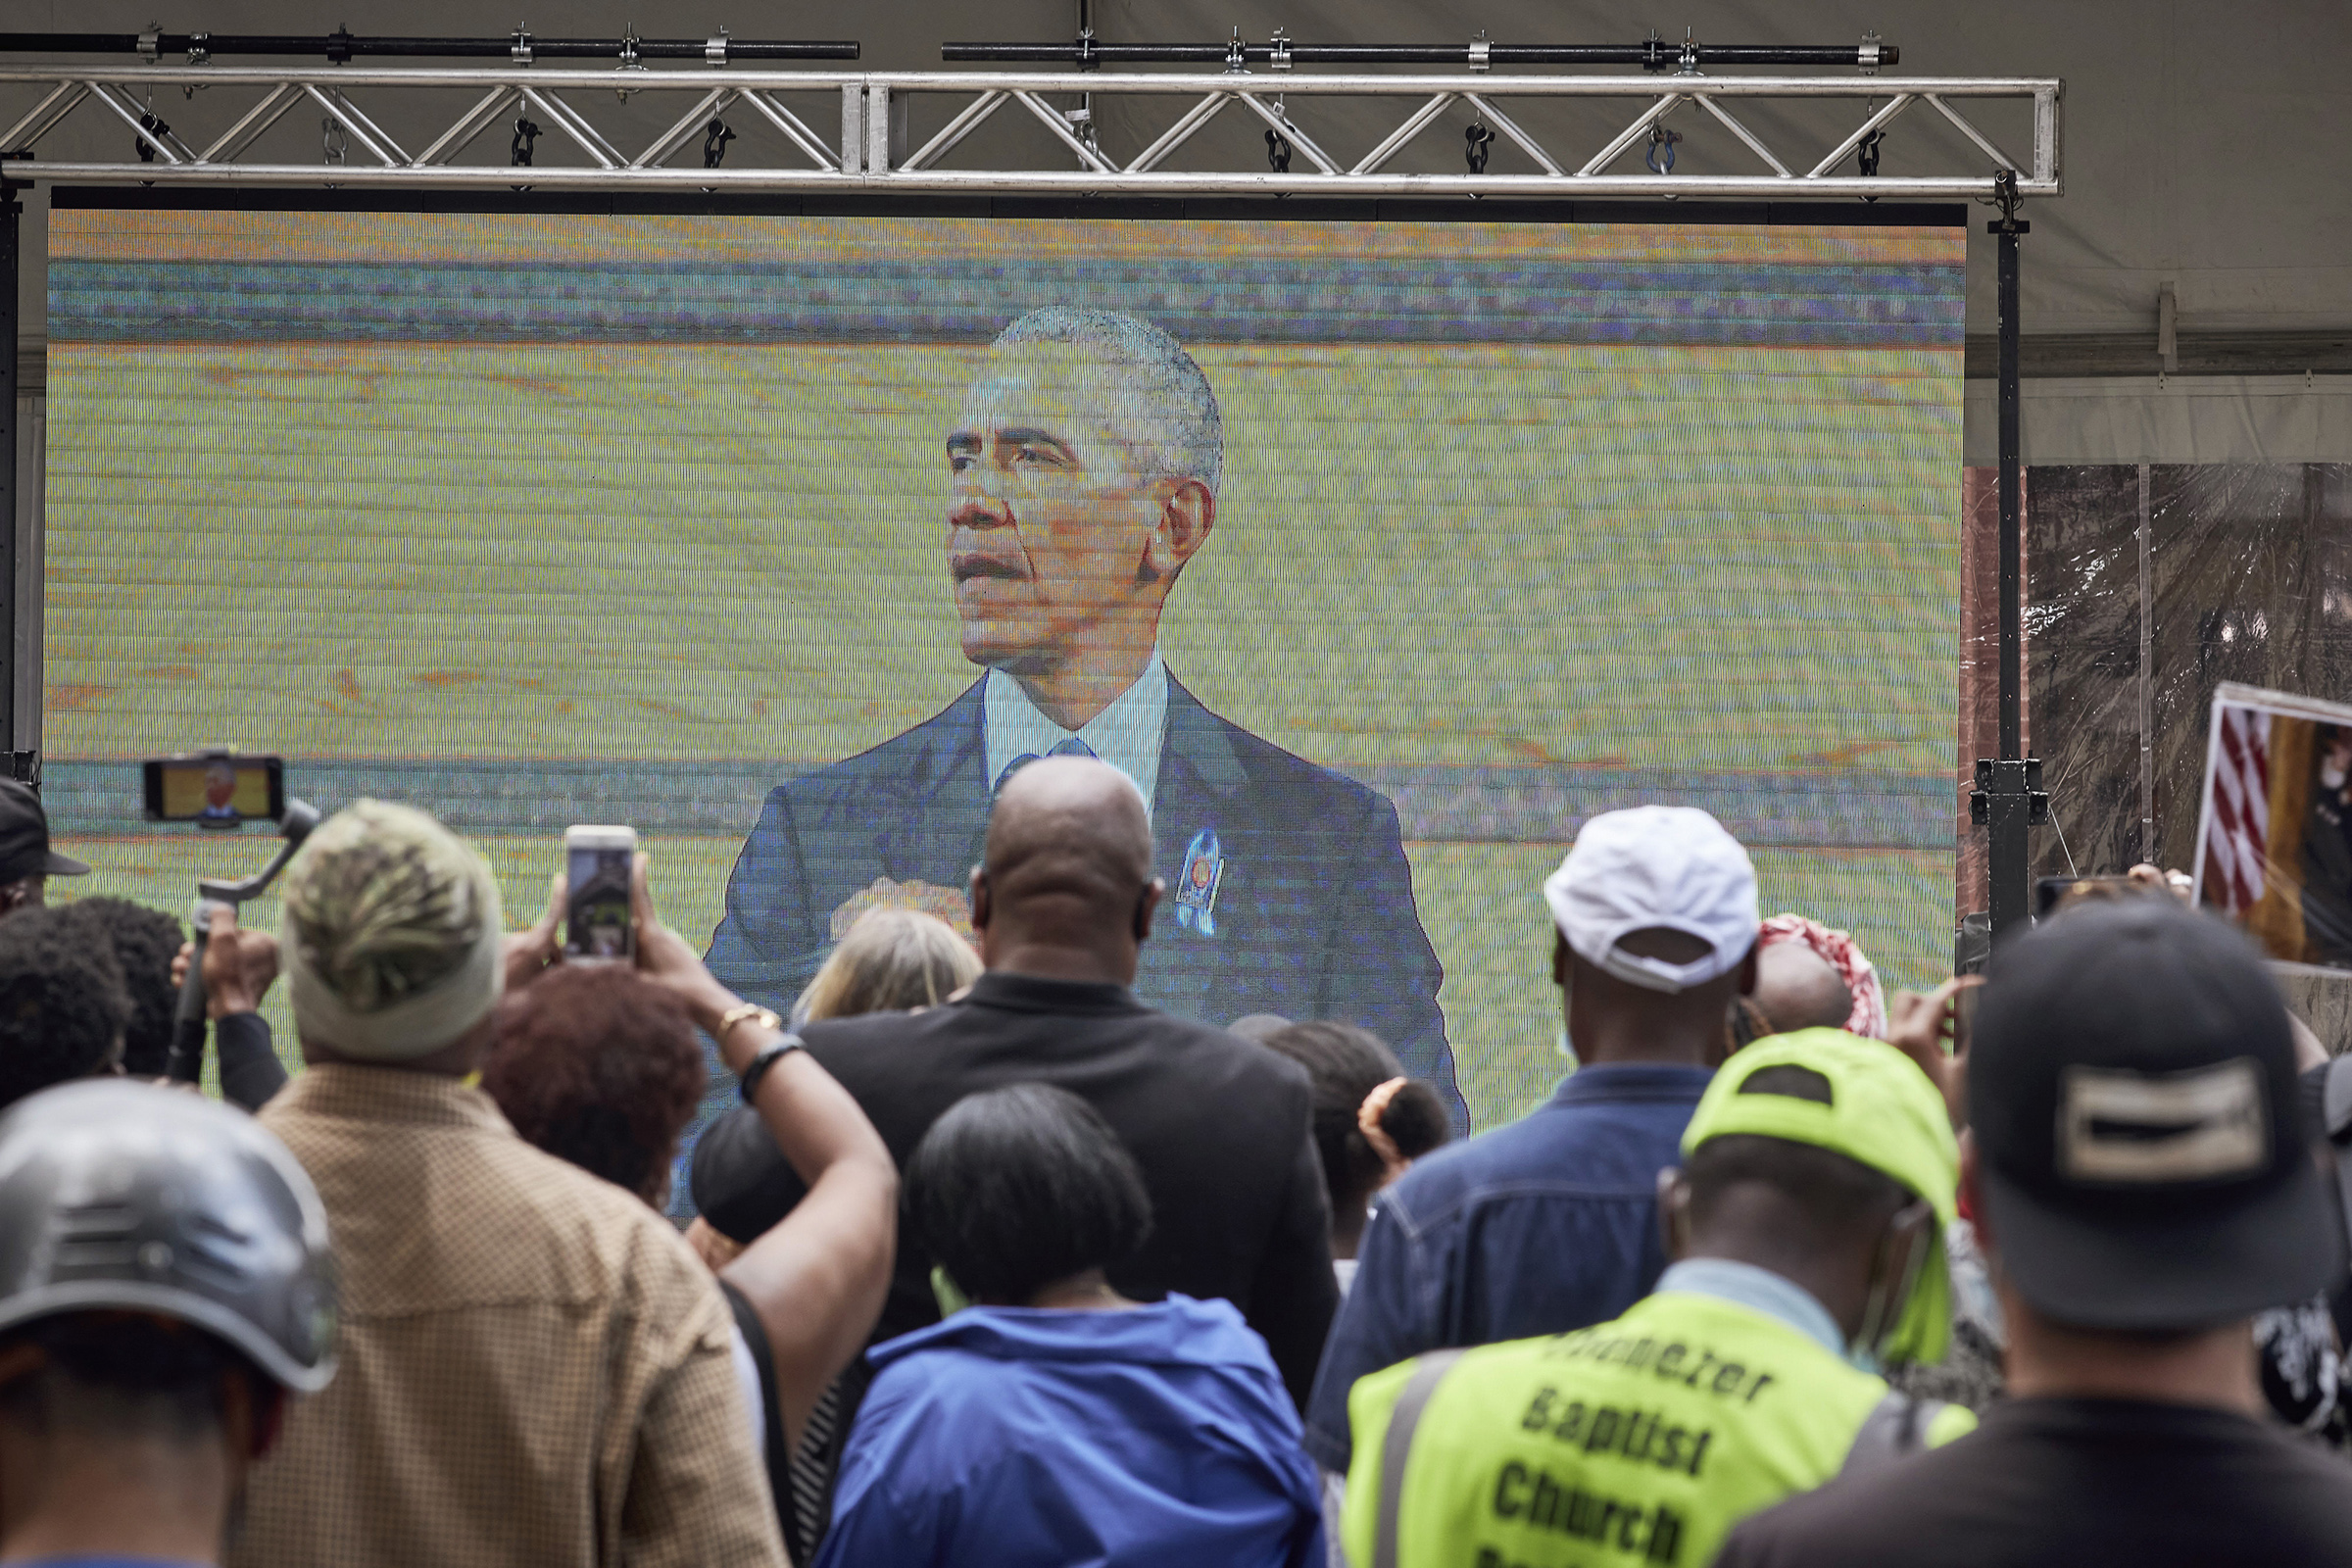 Mourners watch a broadcast of former President Barack Obama speaking at the funeral for the late Rep. John Lewis (D-Ga.) outside Ebenezer Baptist Church, where Lewis' funeral is taking place, in Atlanta, July 30, 2020.